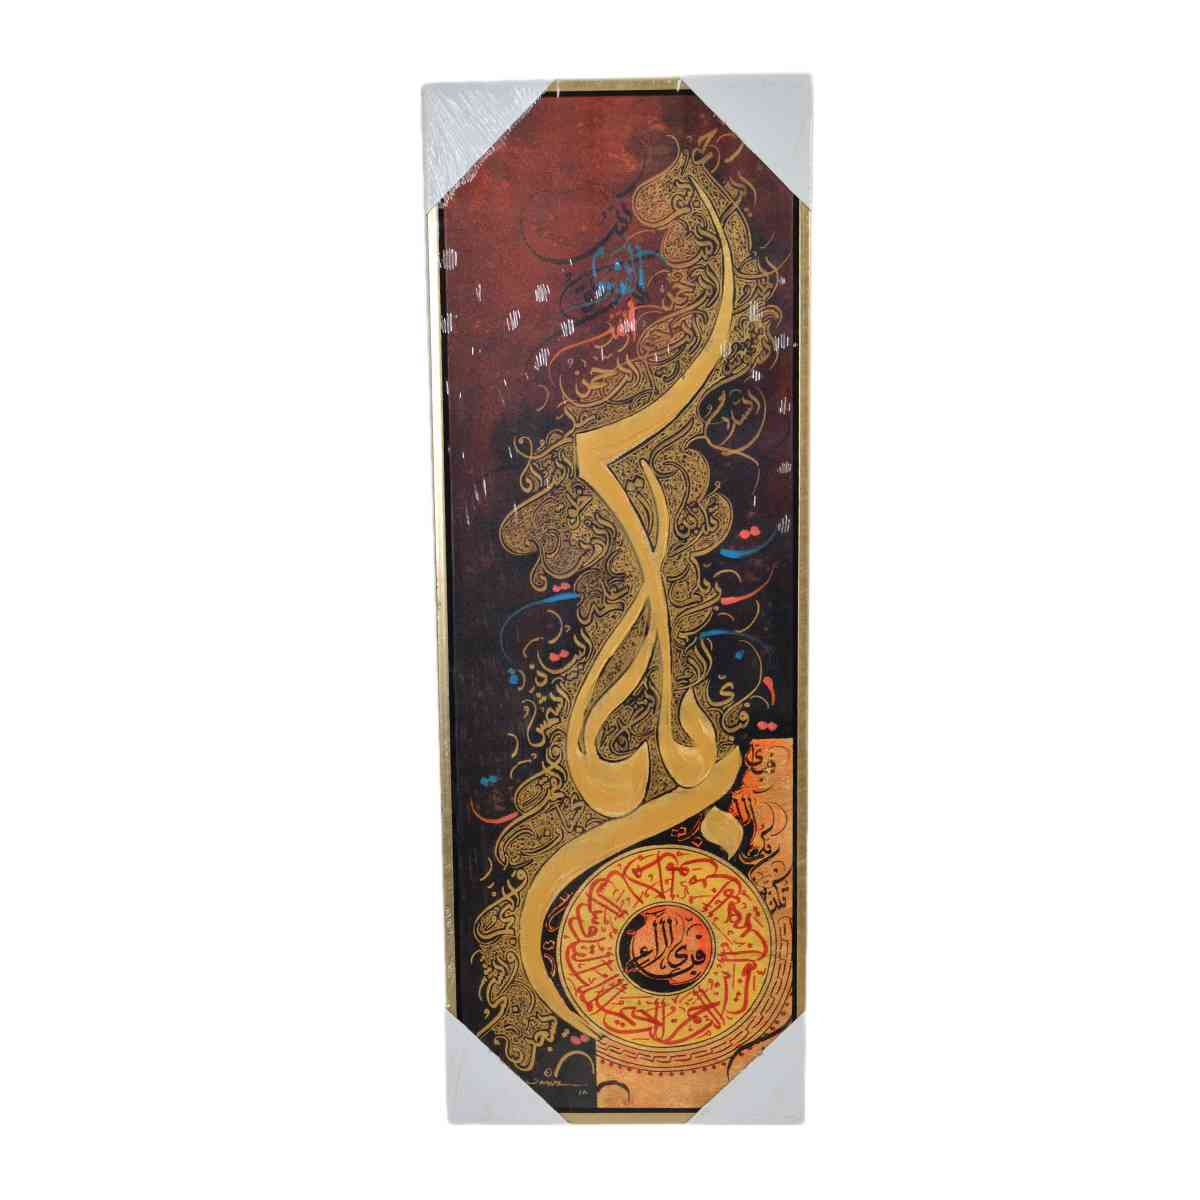 Canvas Oil Calligraphy Golden Border Frame For Home Decoration (Width 13 Inch x Height 36 Inch x Depth 1 Inch)